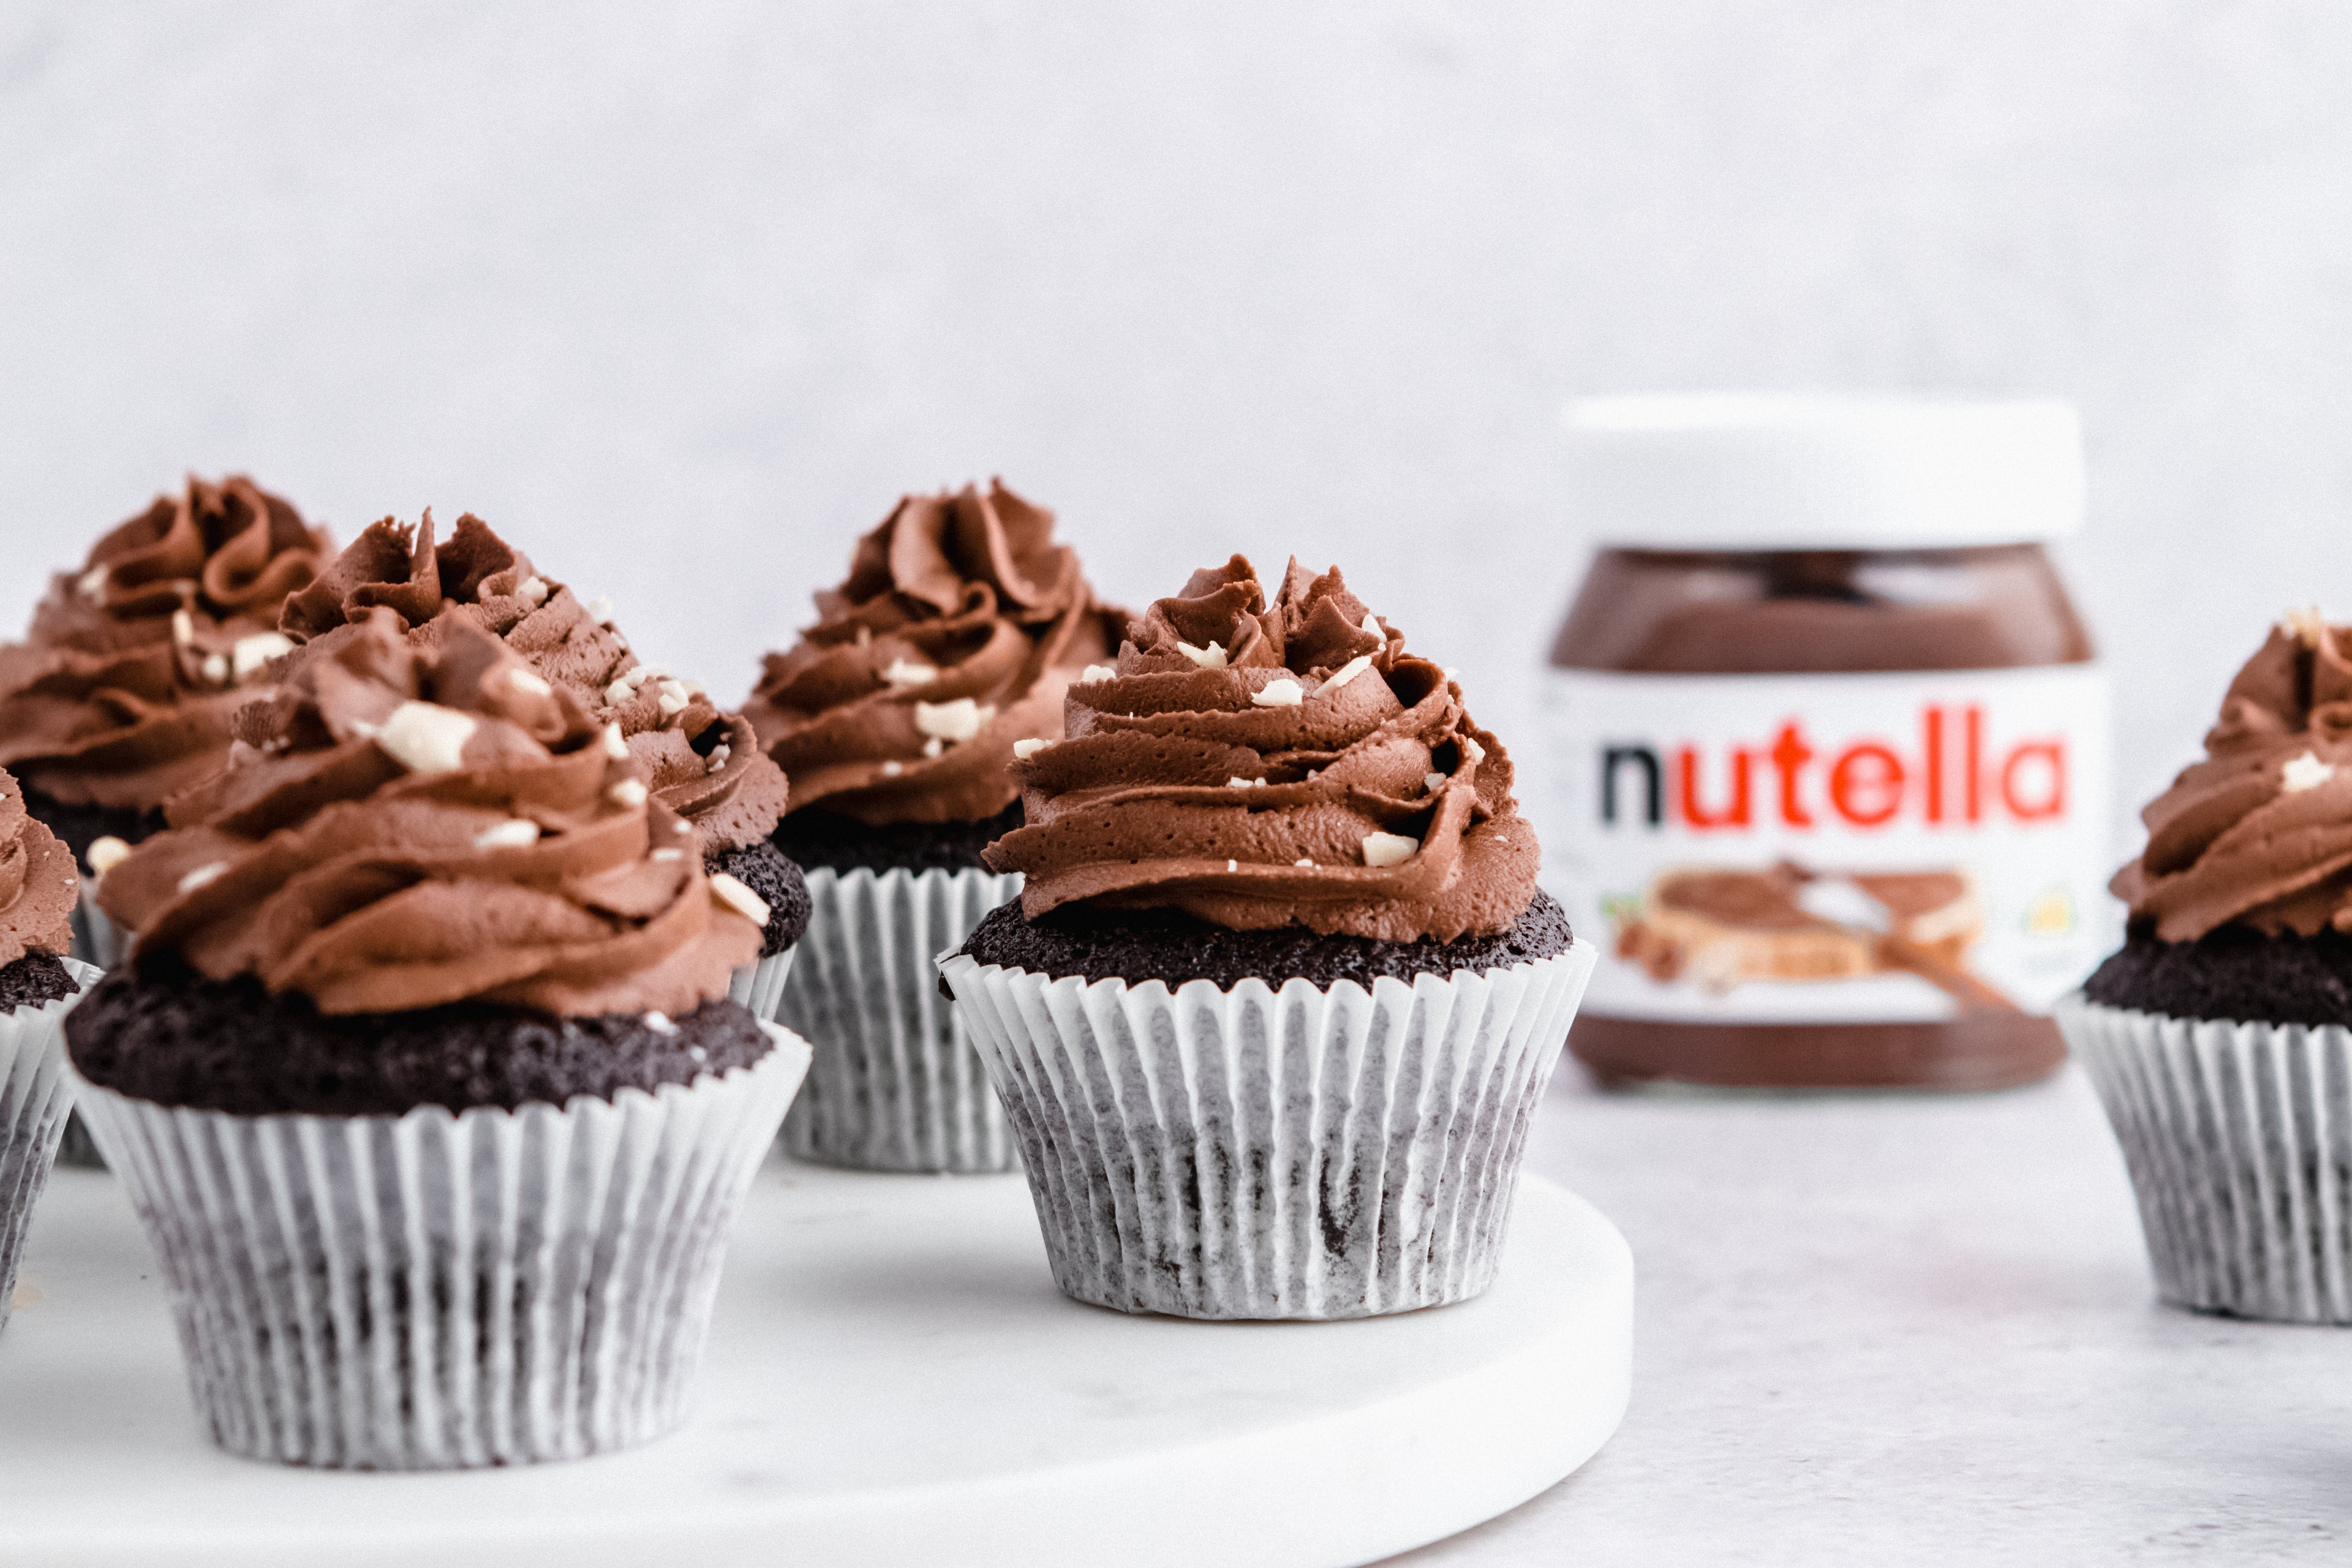 Nutella cupcakes on a marble tray, with a jar of Nutella in the background